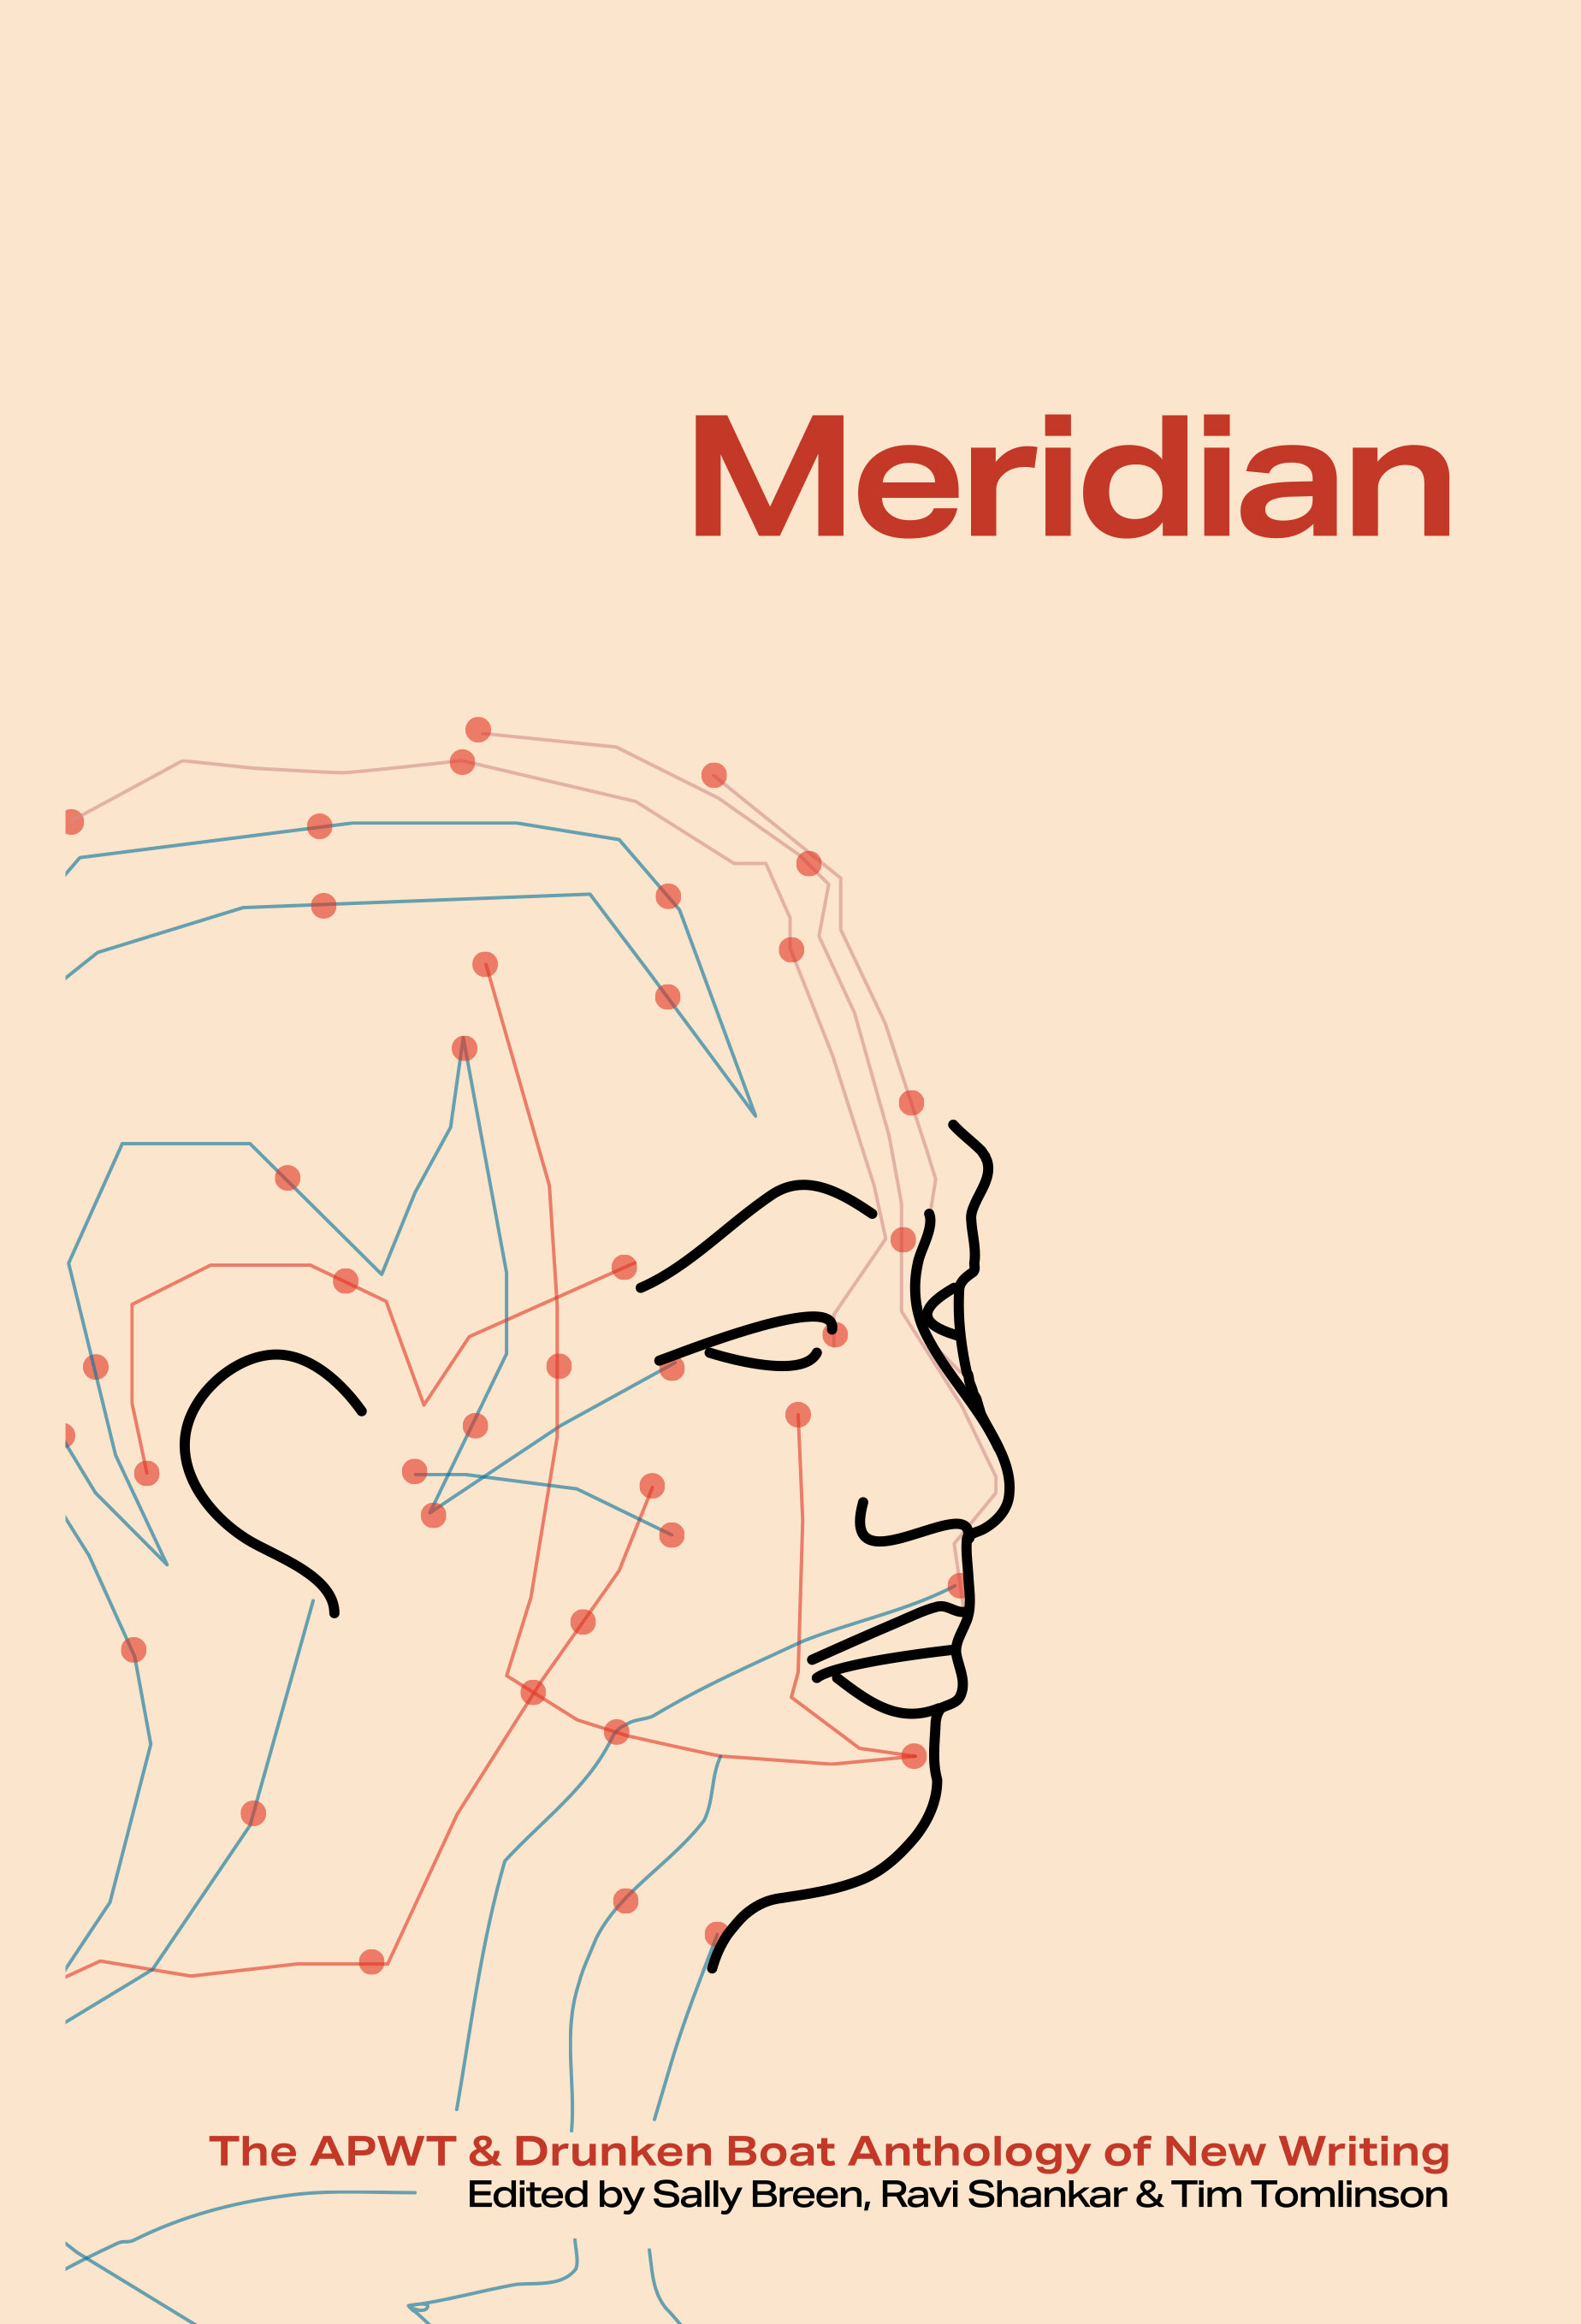 Meridian: The APWT Drunken Boat Anthology of New Writing